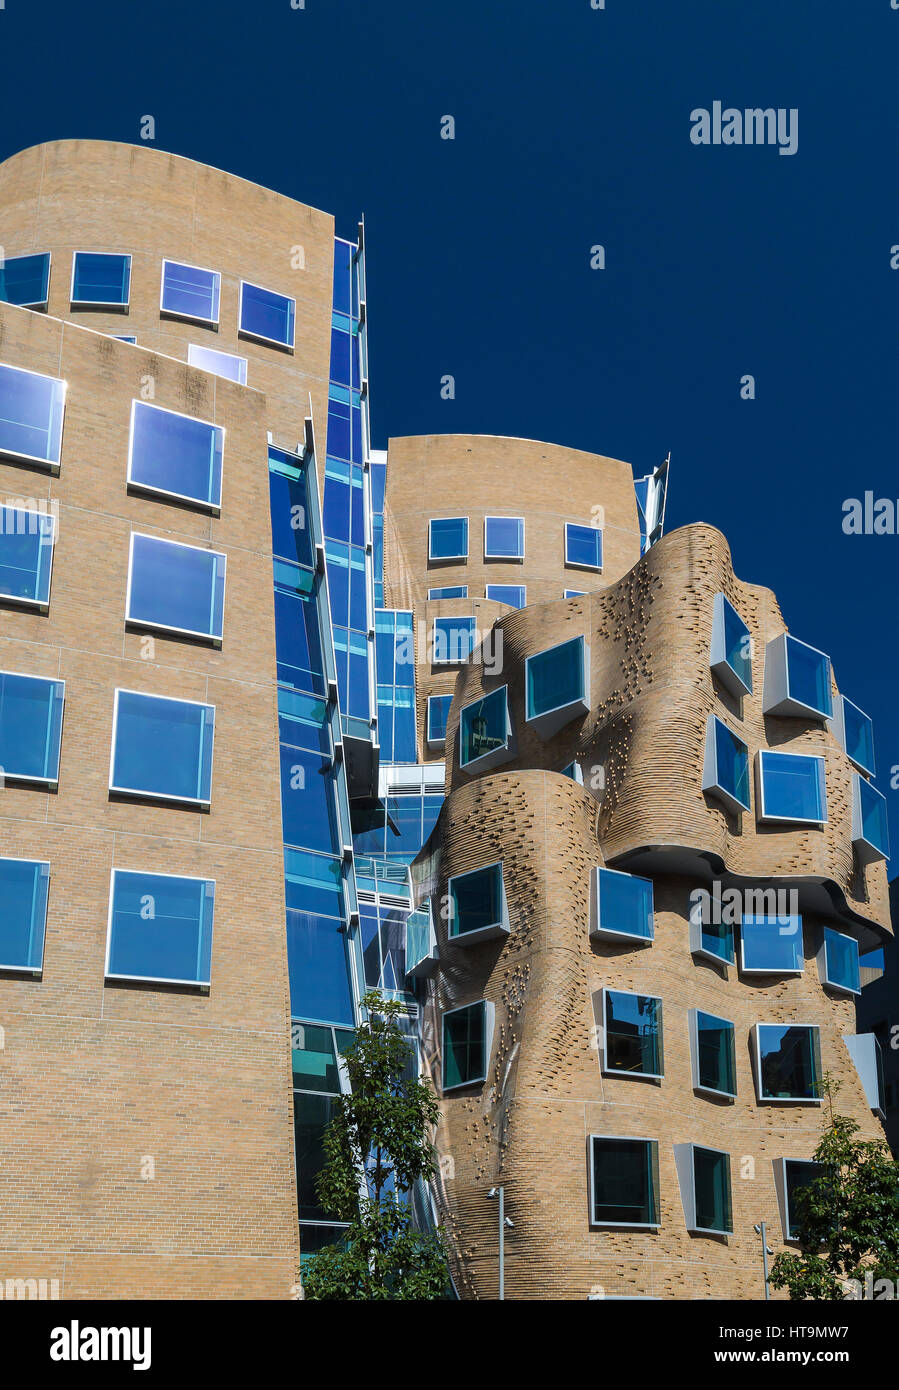 Stock Photo - The first building in Australia designed by one of the worlds most  influential architects Frank Gehry. Its named after Dr Chau Chak Wing